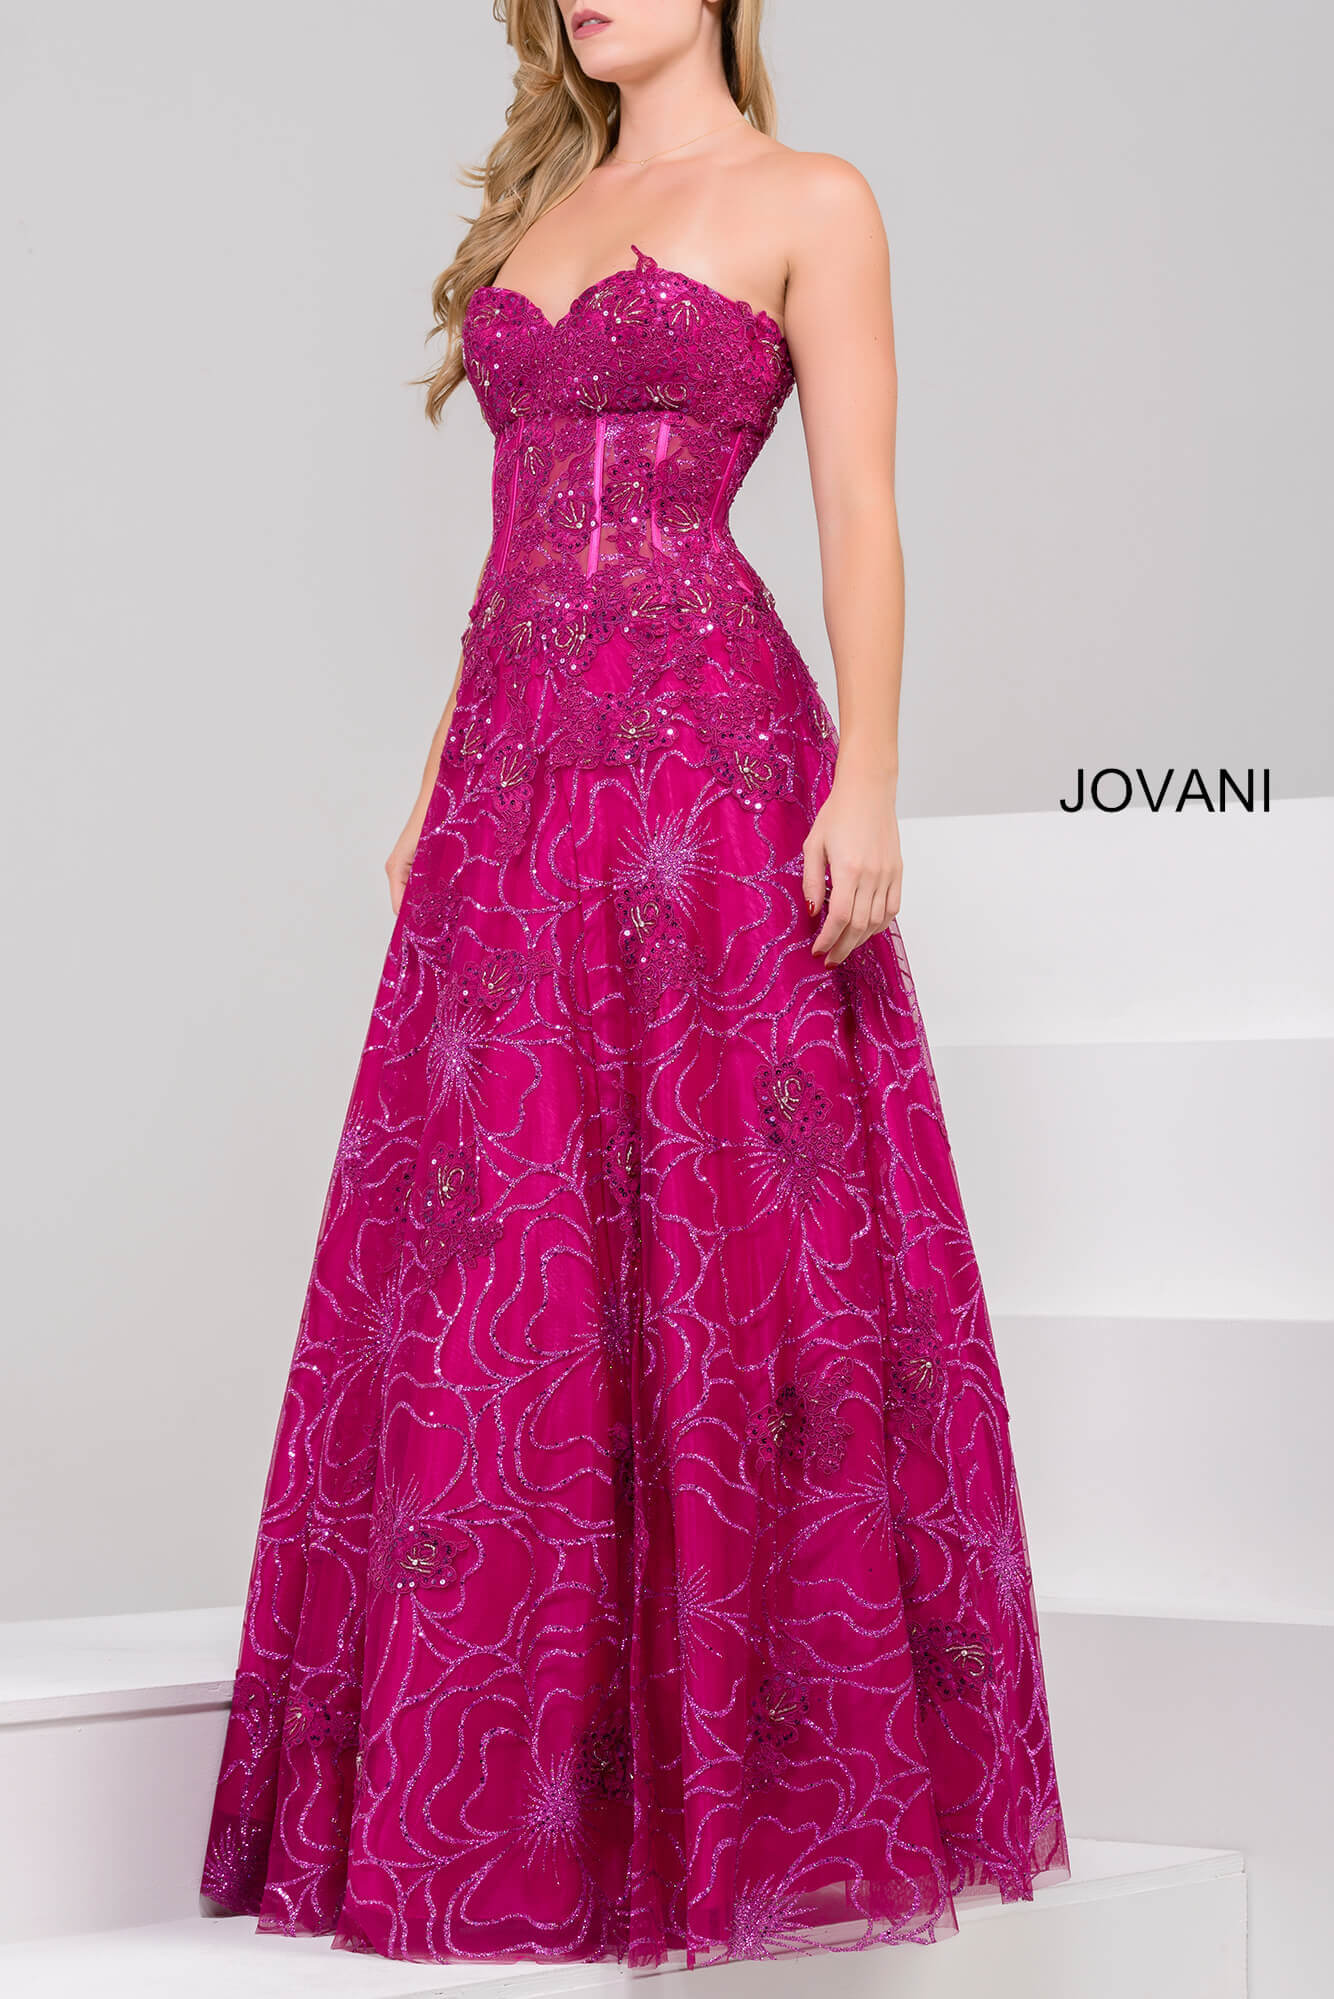 14913 wine glitter embellished prom gown  on mobile 4